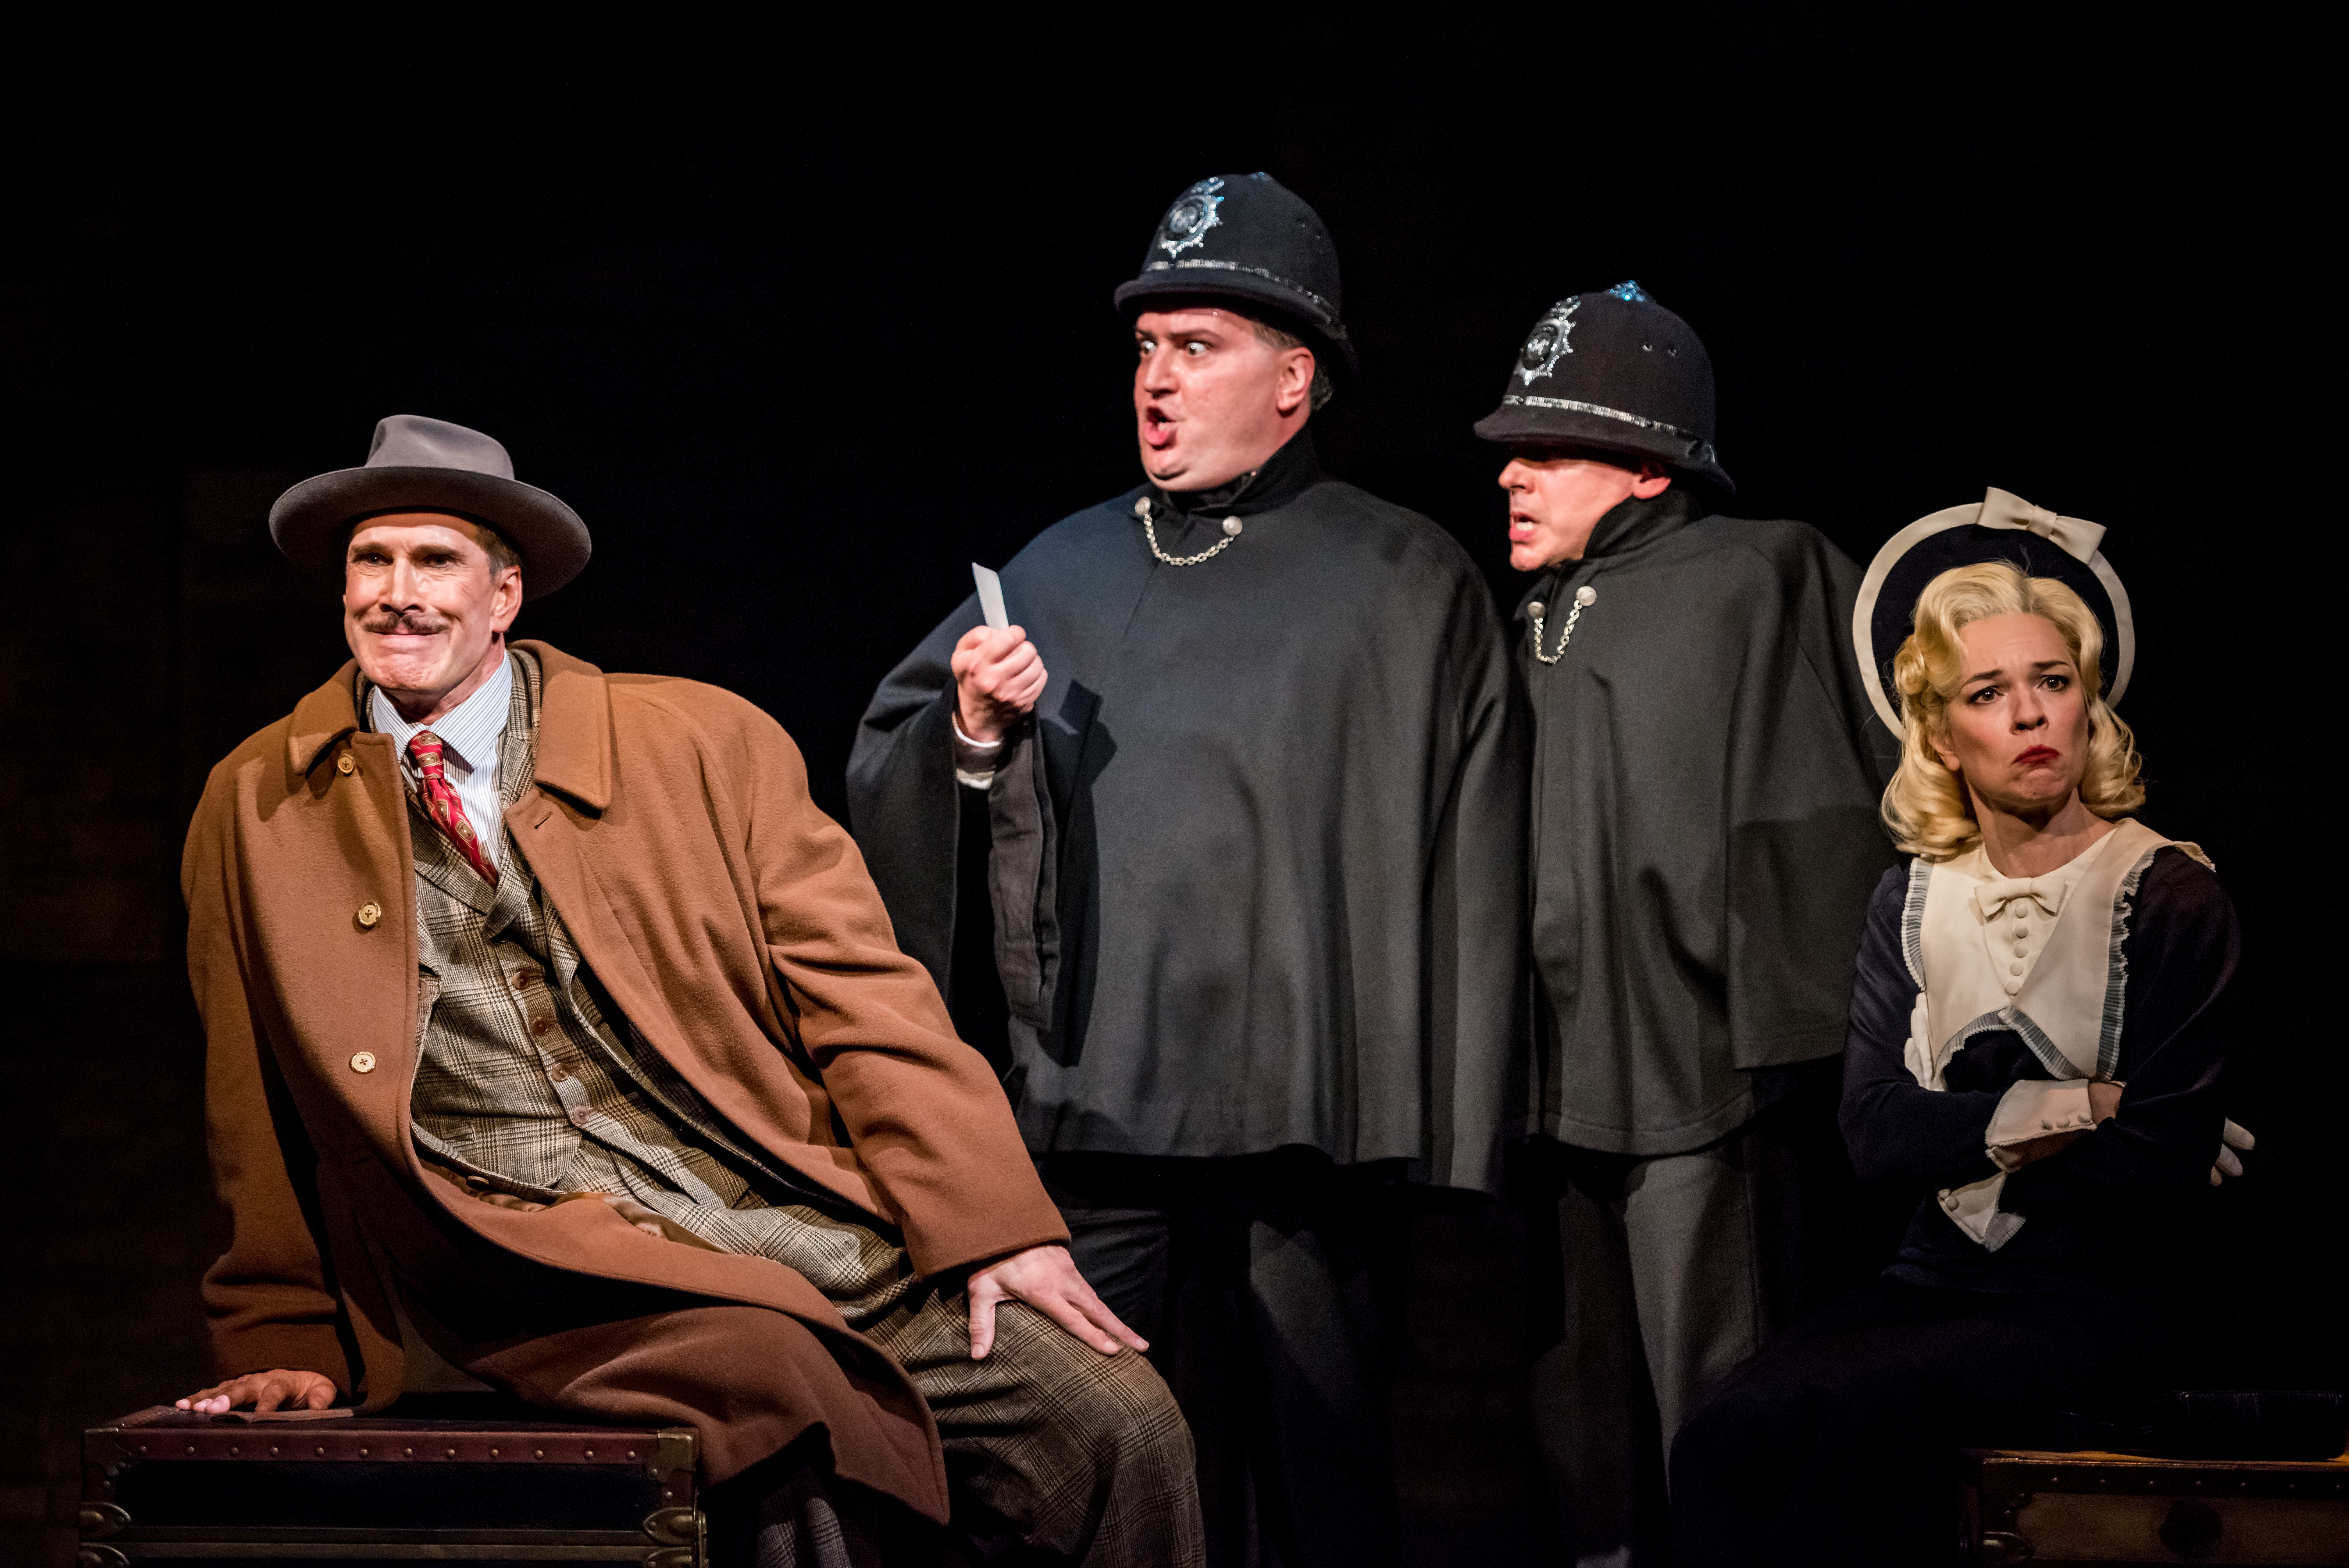 BWW Review: Summer Audiences Can Chill Out  With Hitchcock's THE 39 STEPS at the Alley Theatre